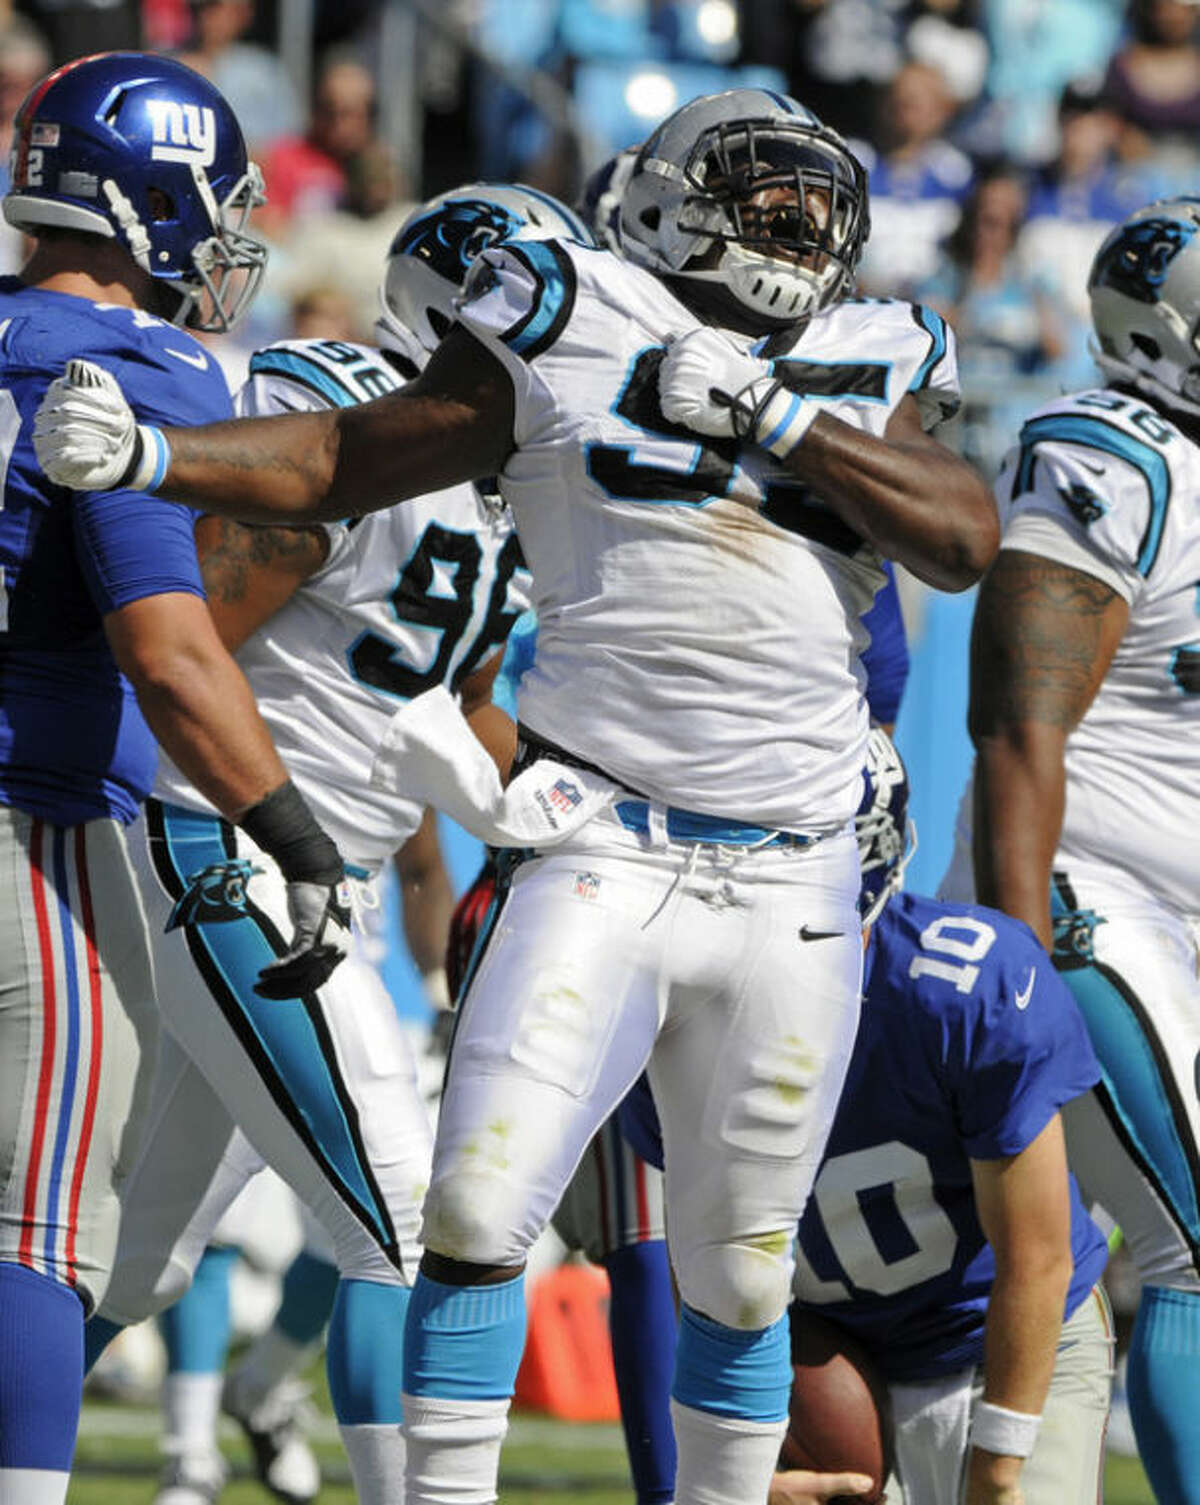 Carolina Panthers' Charles Johnson (95) reacts after sacking New York Giants quarterback Eli Manning (10) during the second half of an NFL football game in Charlotte, N.C., Sunday, Sept. 22, 2013. The Panthers won 38-0. (AP Photo/Mike McCarn)